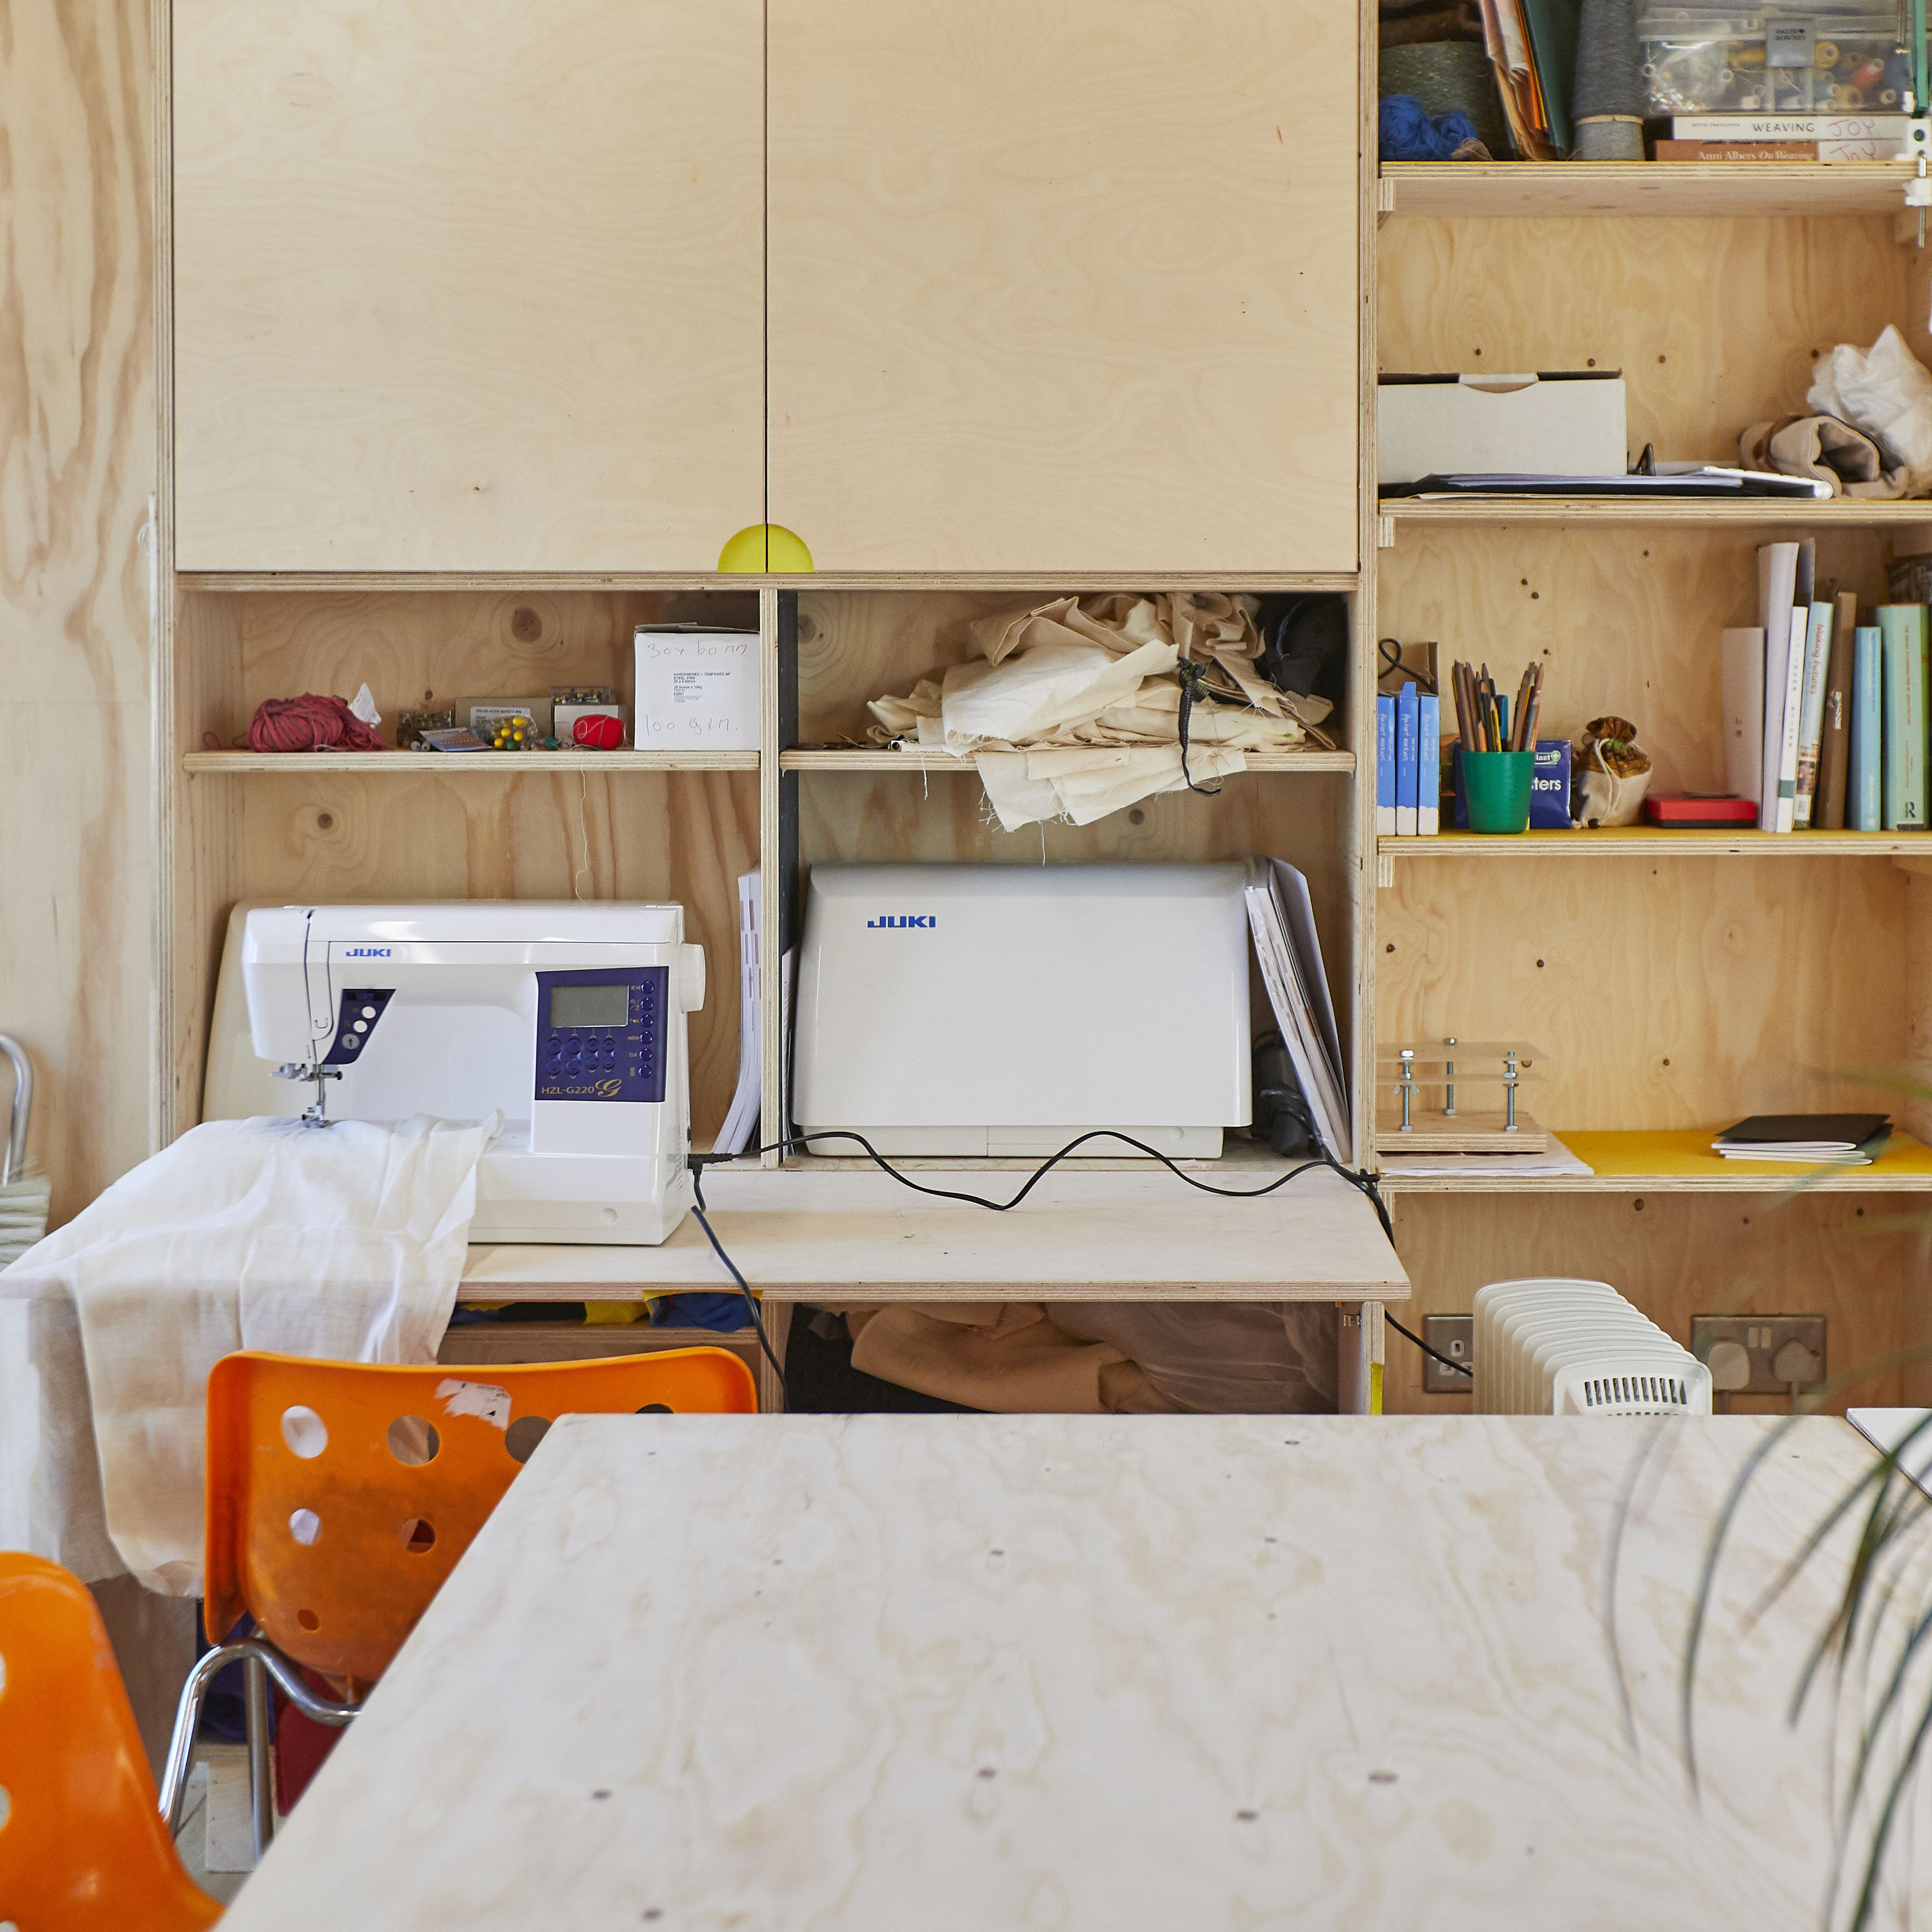 A informal but well organised workshop with plywood walls and cupboards, orange chairs, a sewing machine and a tabletop in the foreground